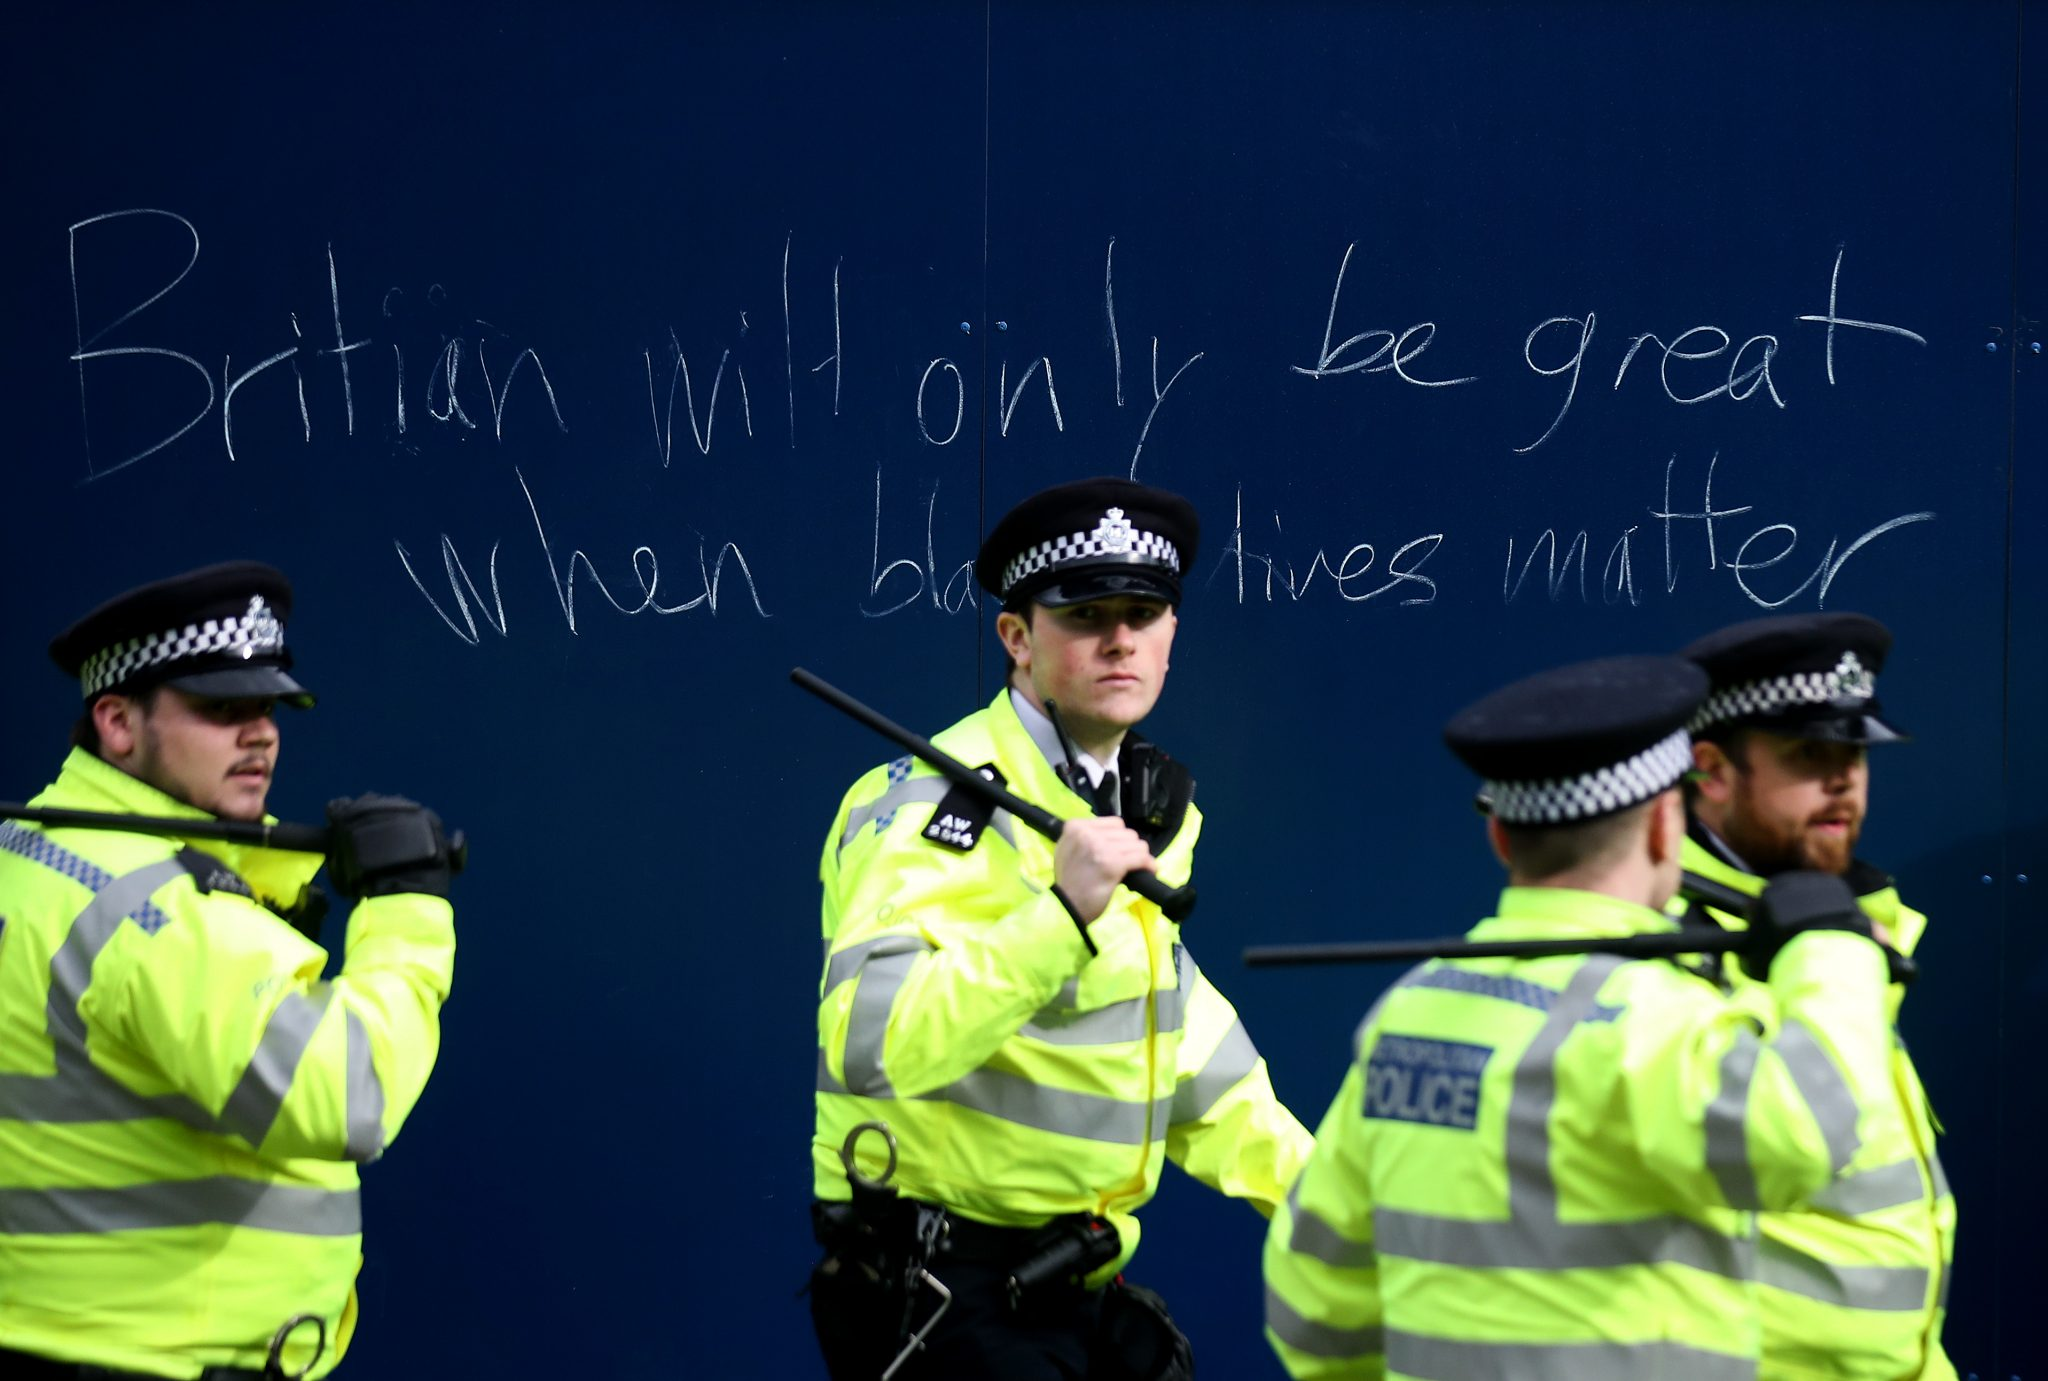 Police officers in London during a Black Lives Matter demonstration in 2020